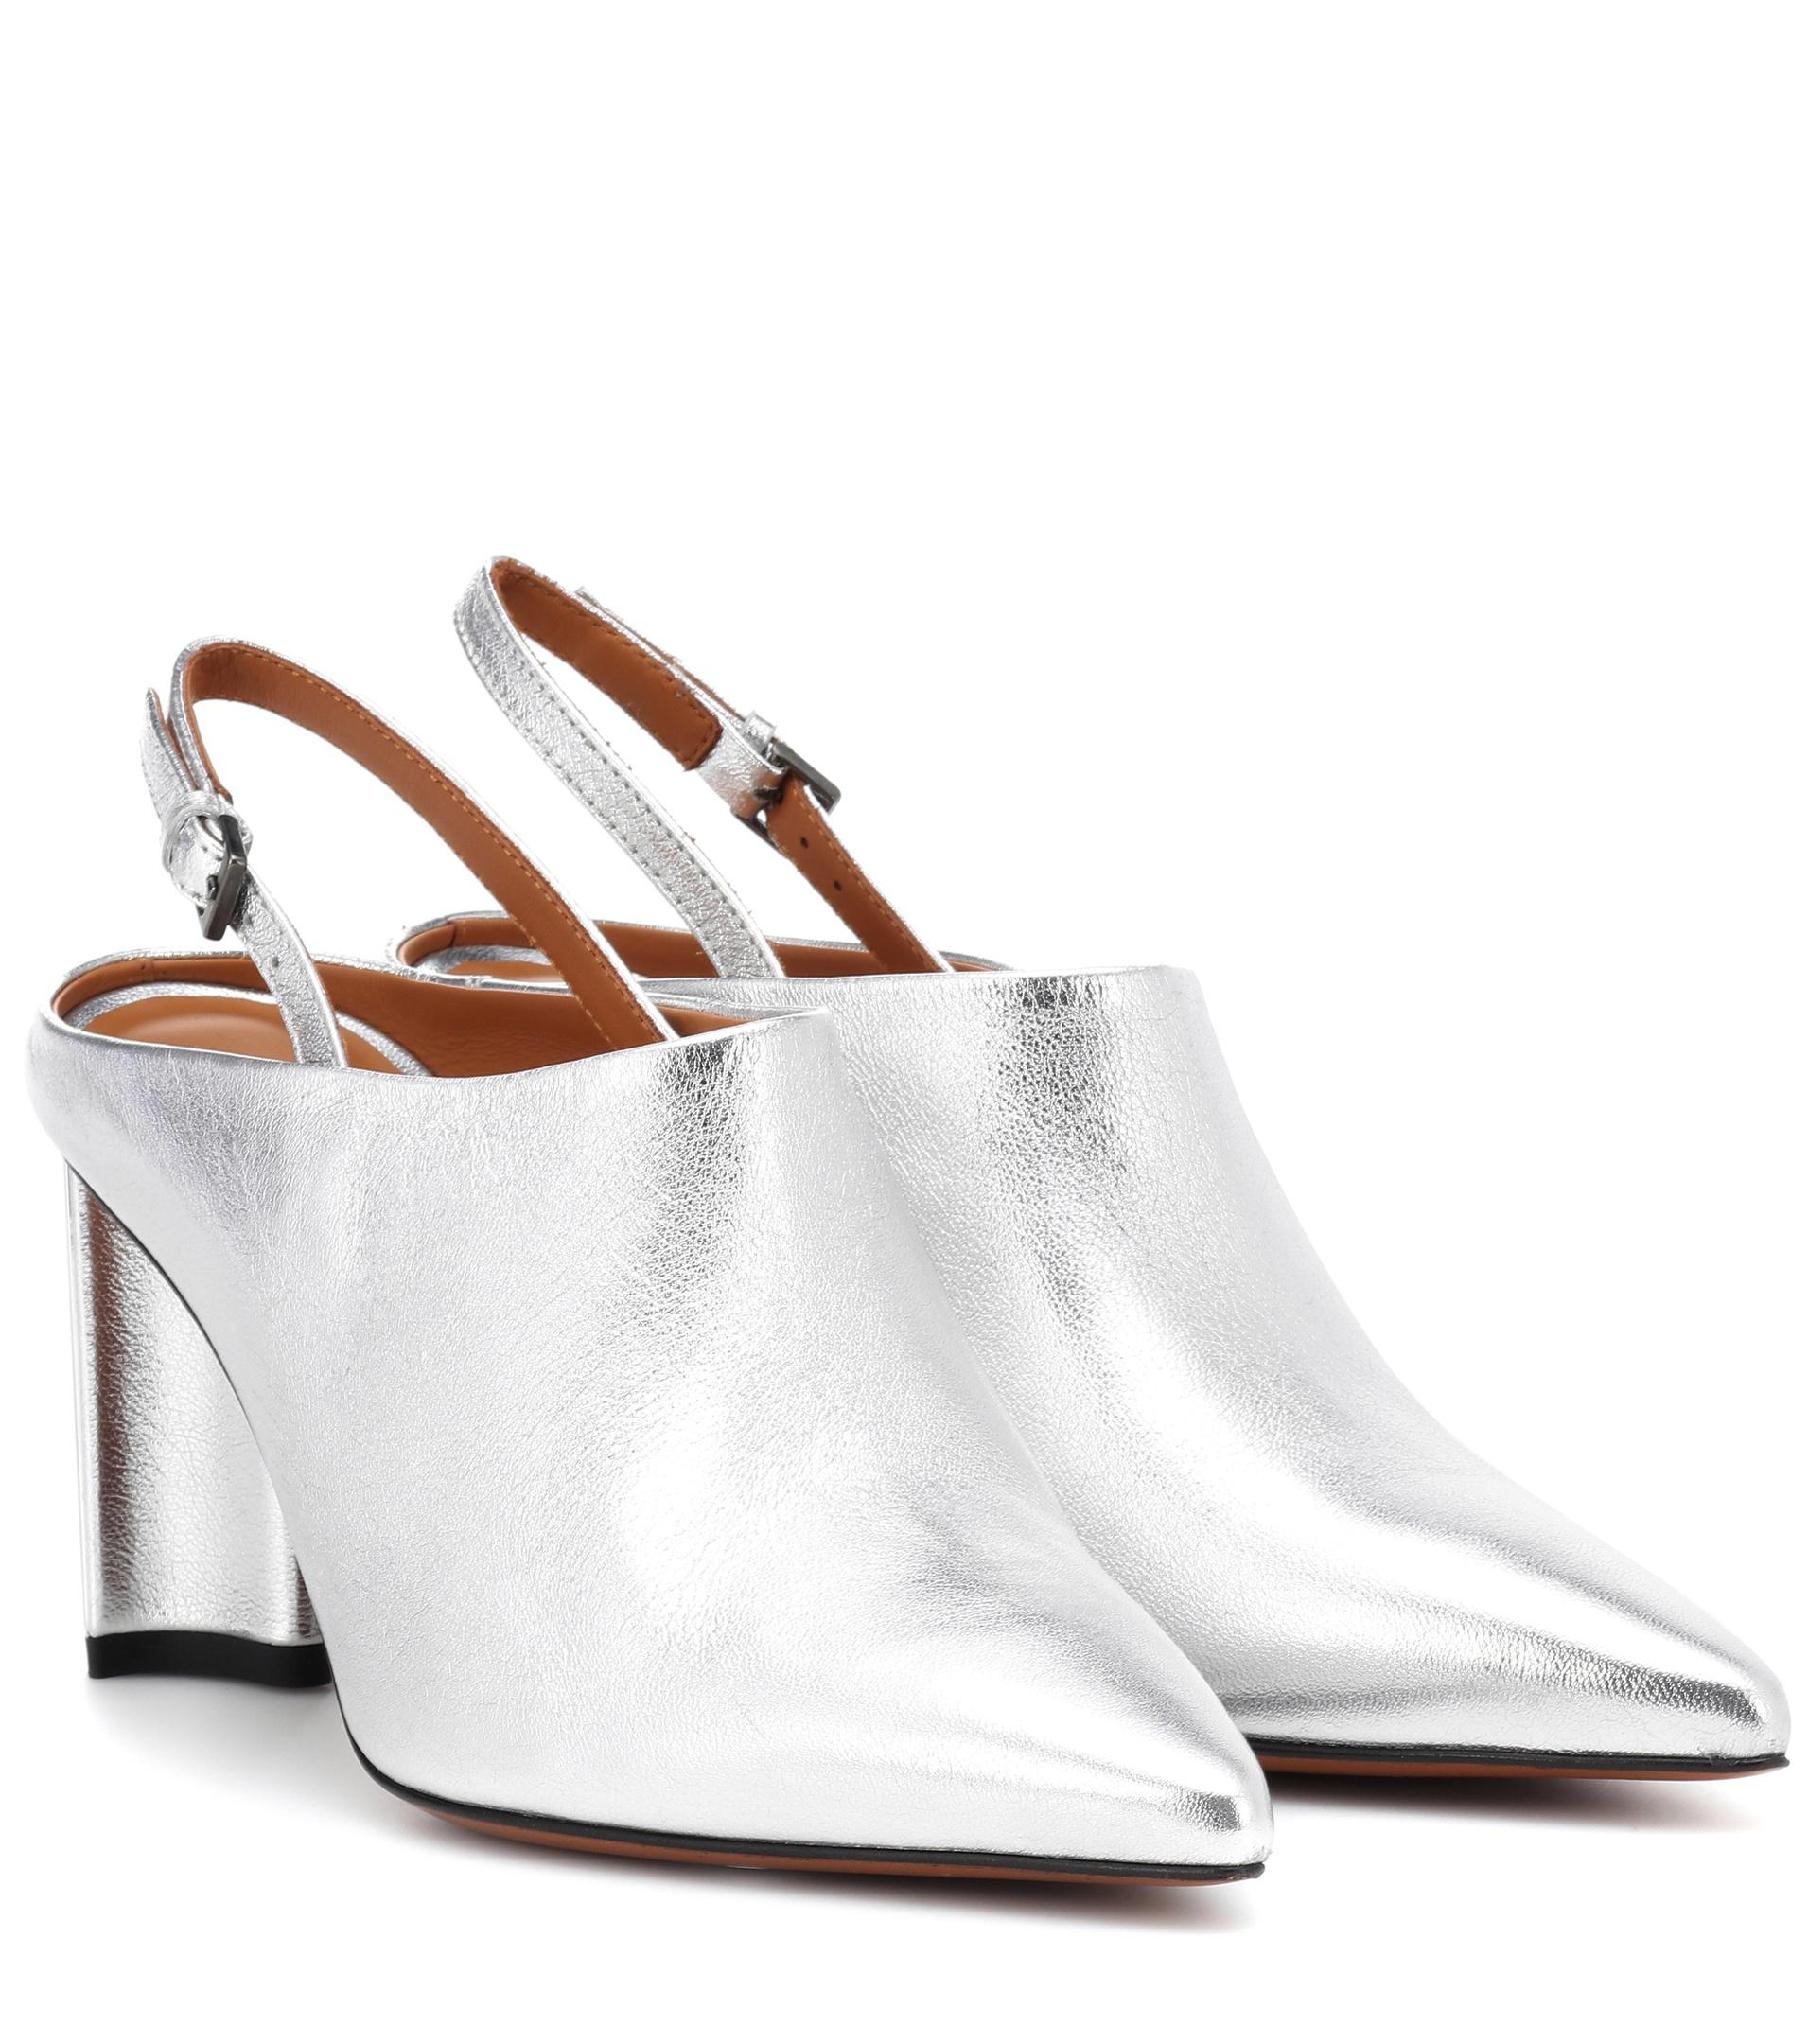 Lyst Exclusive Mytheresa Leather Slingback Clergerie – To Kyra vnwm0OyN8